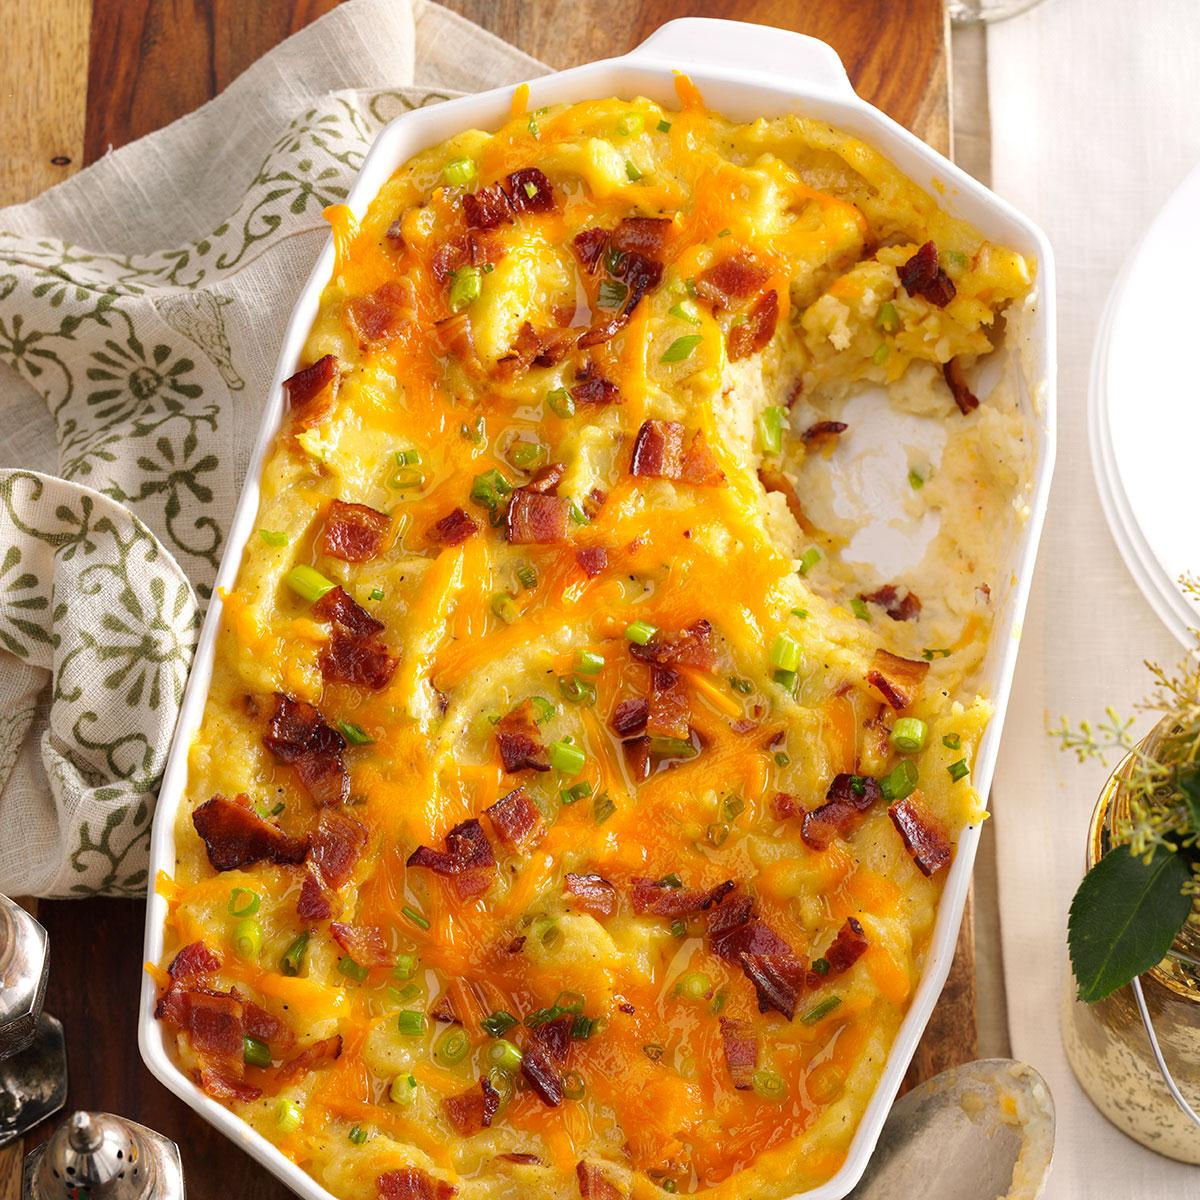 Twice Baked Cheddar Potato Casserole Recipe How To Make It Taste Of Home